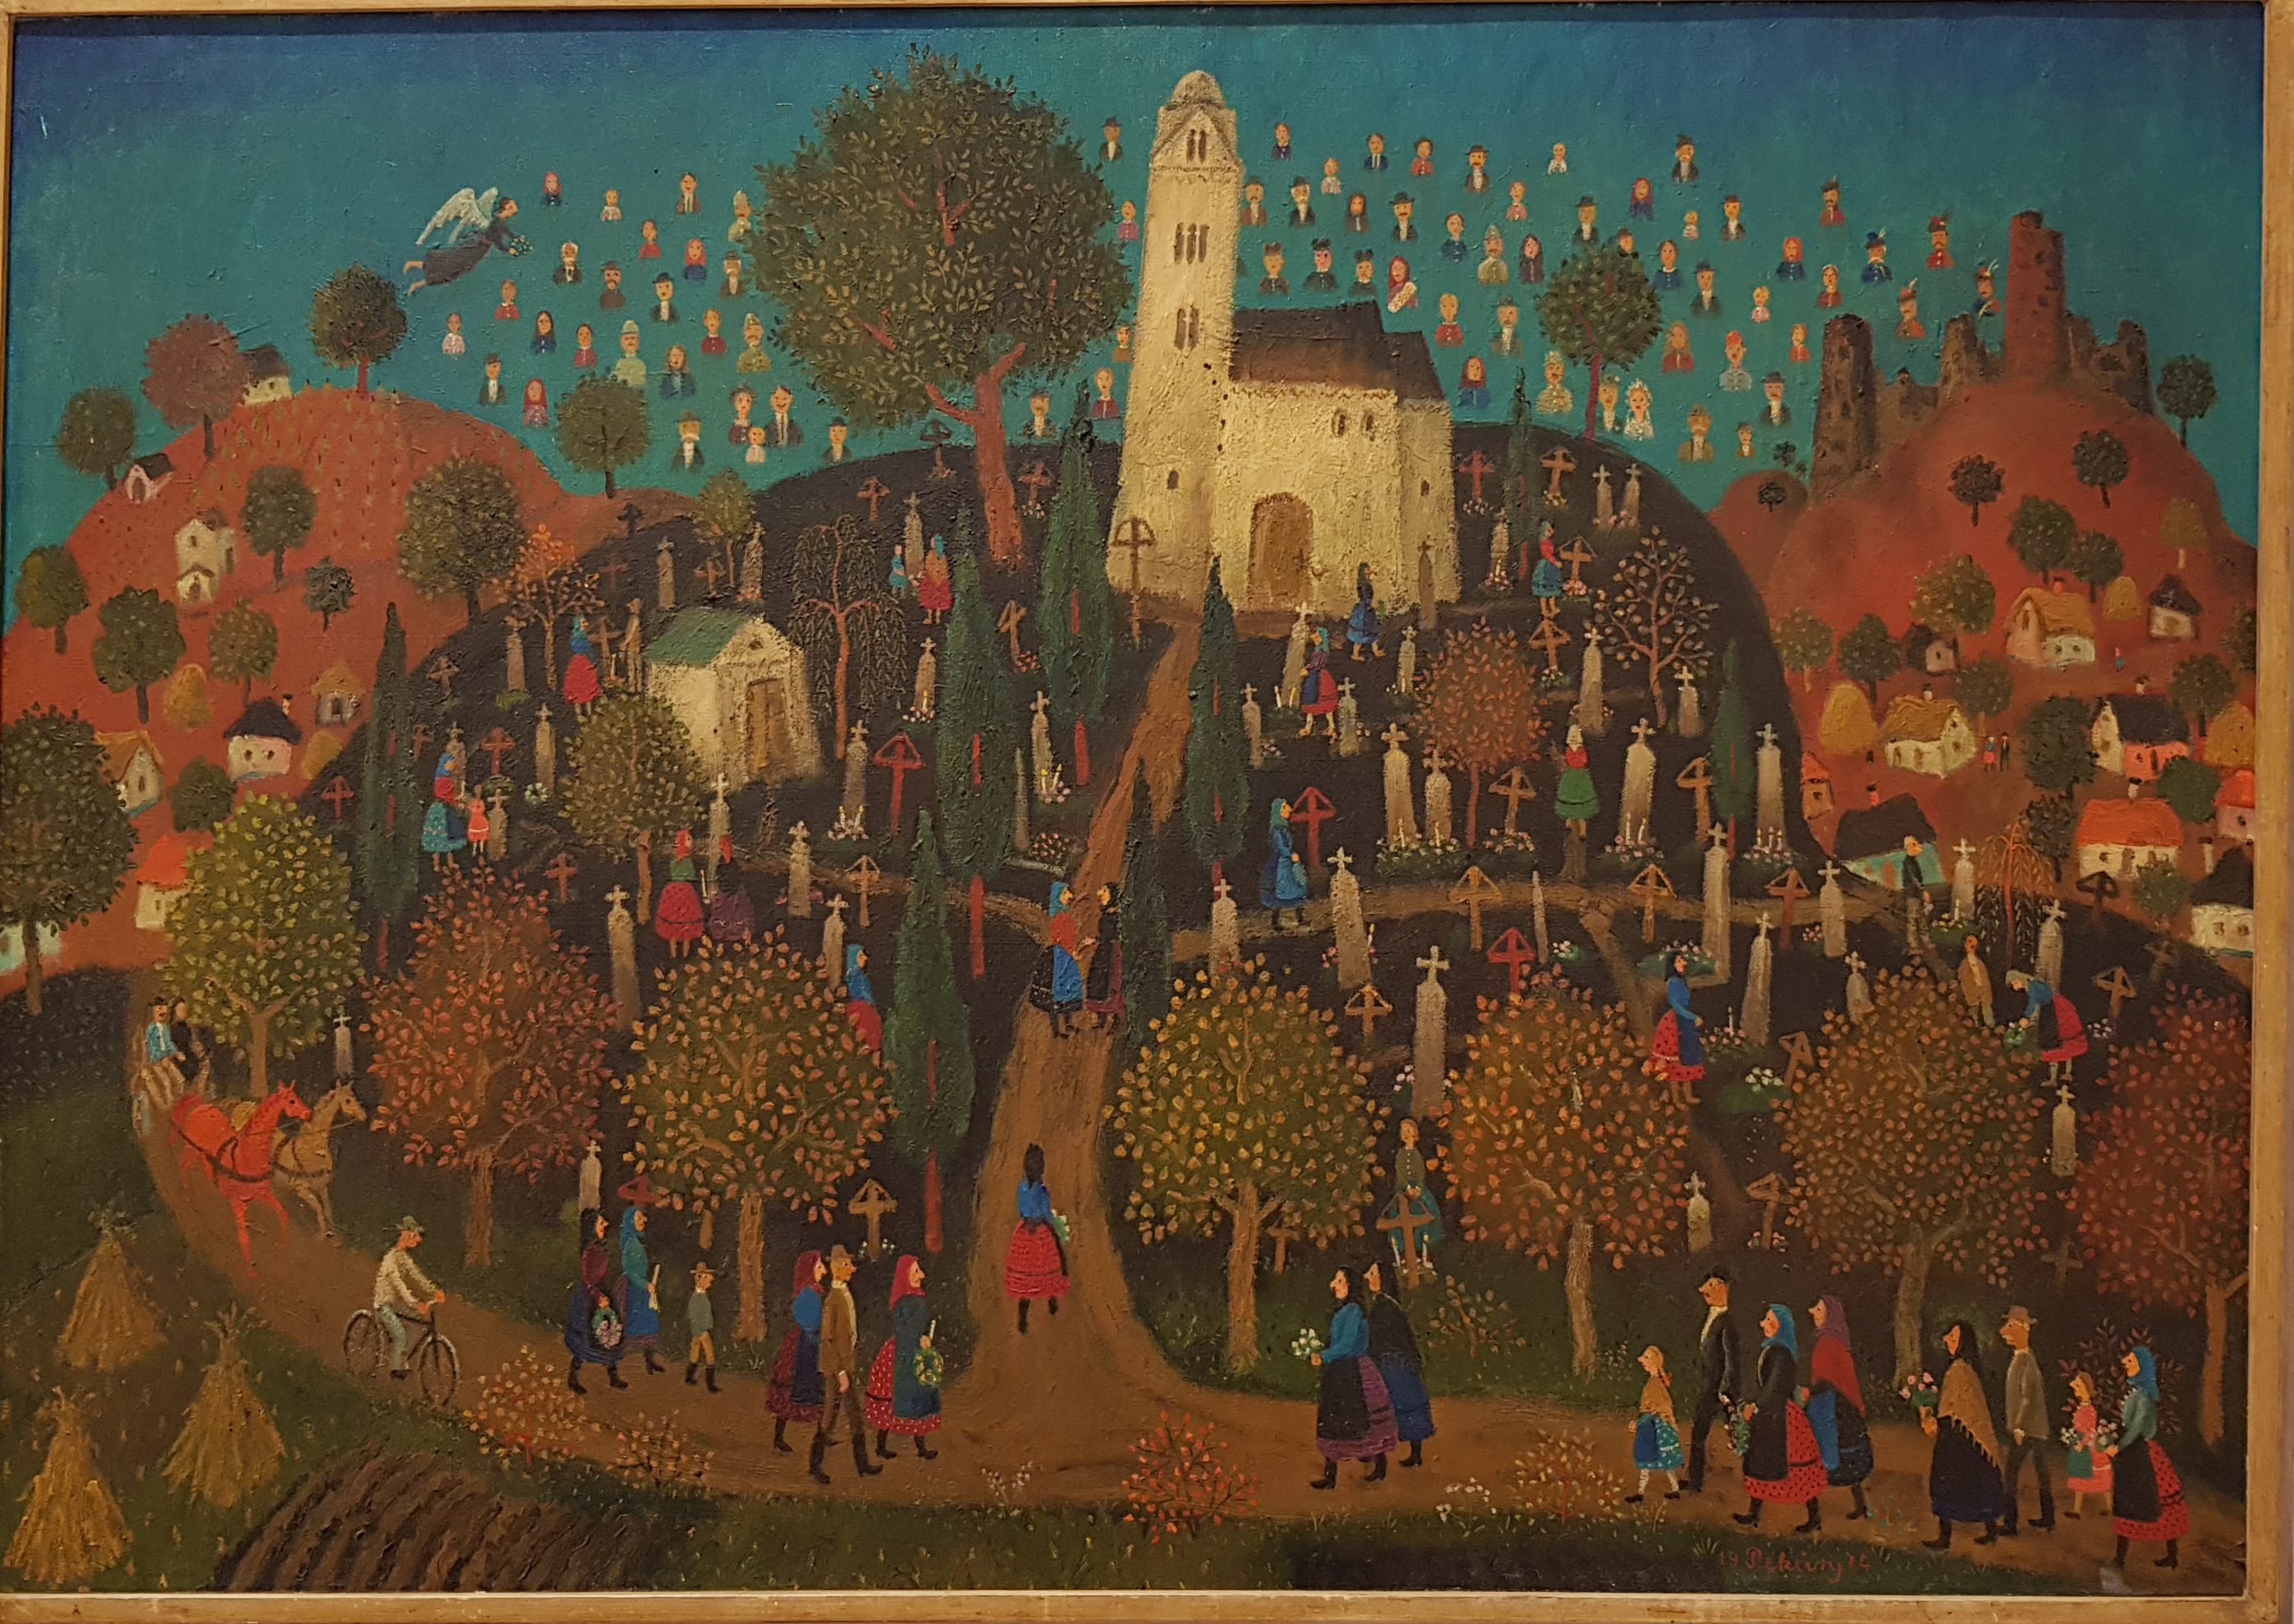 István Pekáry: The Day of the Dead